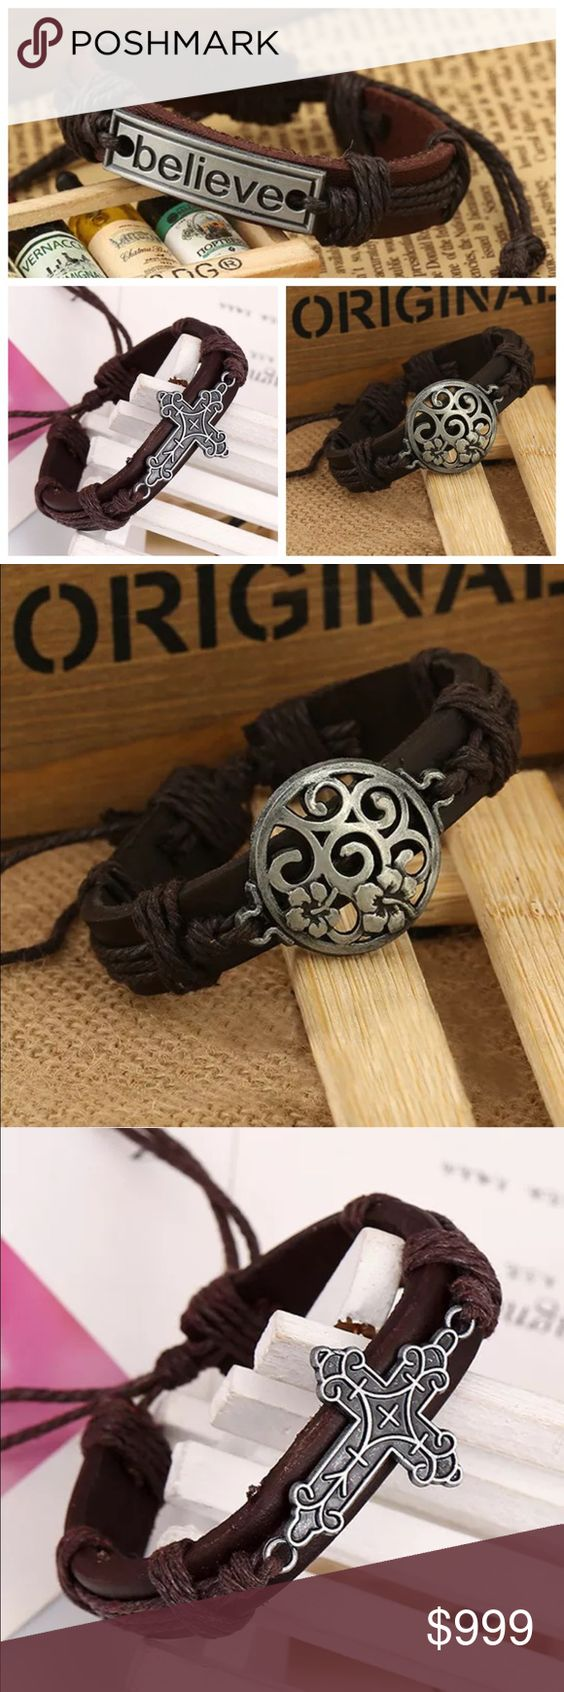 COMING SOON! 🆕 Genuine Leather & Hemp Bracelets Believe, Cross, and Celtic Floral will be available as pictured. Adjustable length. Should arrive to me in about two weeks. I will have 2 of each available. To be notified when available, like or leave a comment. Coffee Bean's Boutique Jewelry Bracelets